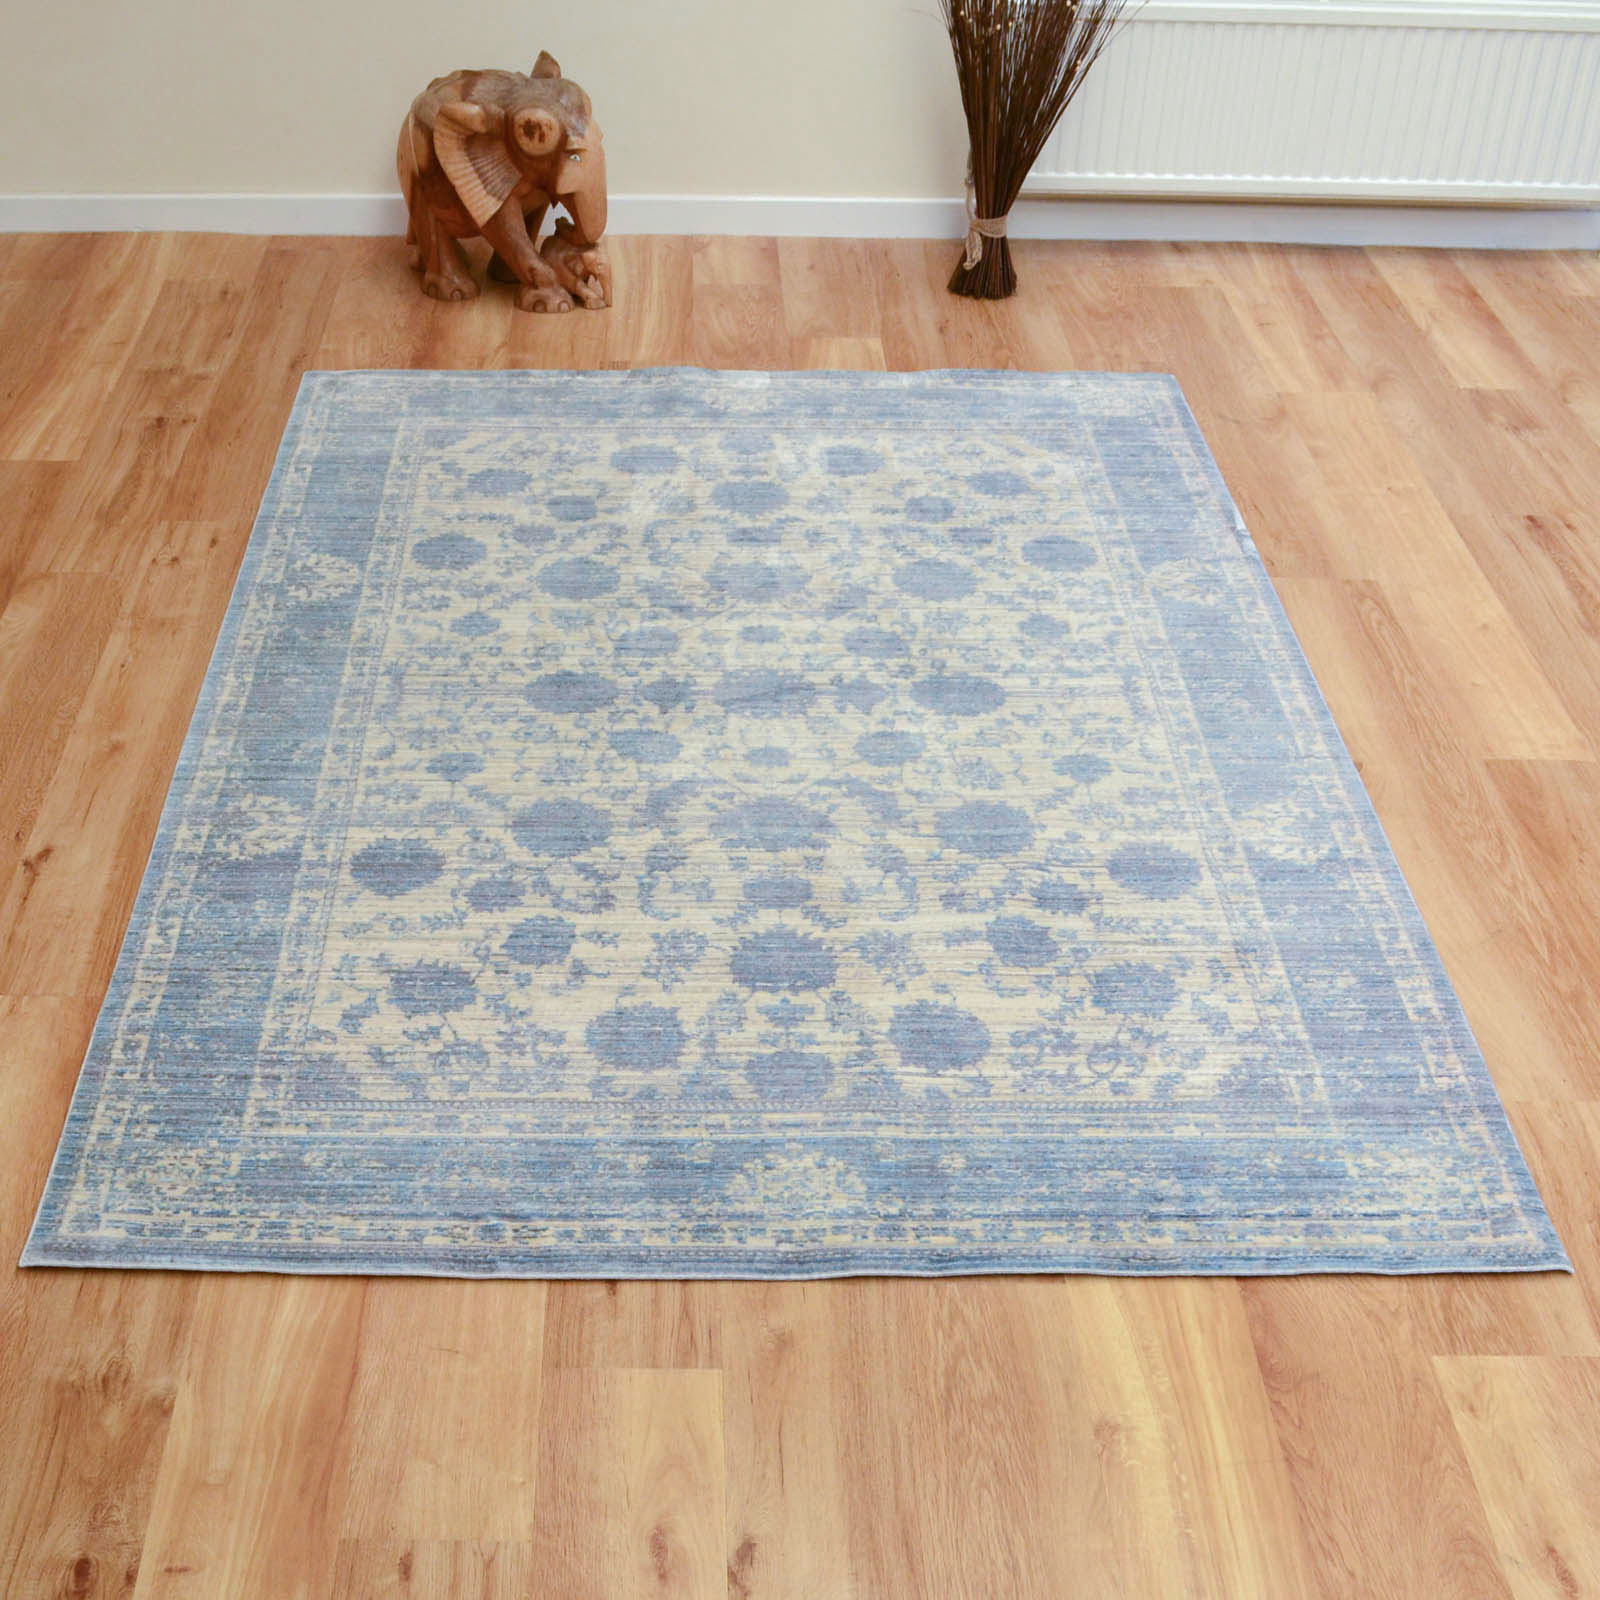 Aqua Silk Traditional Rugs E414a In Grey And Light Blue